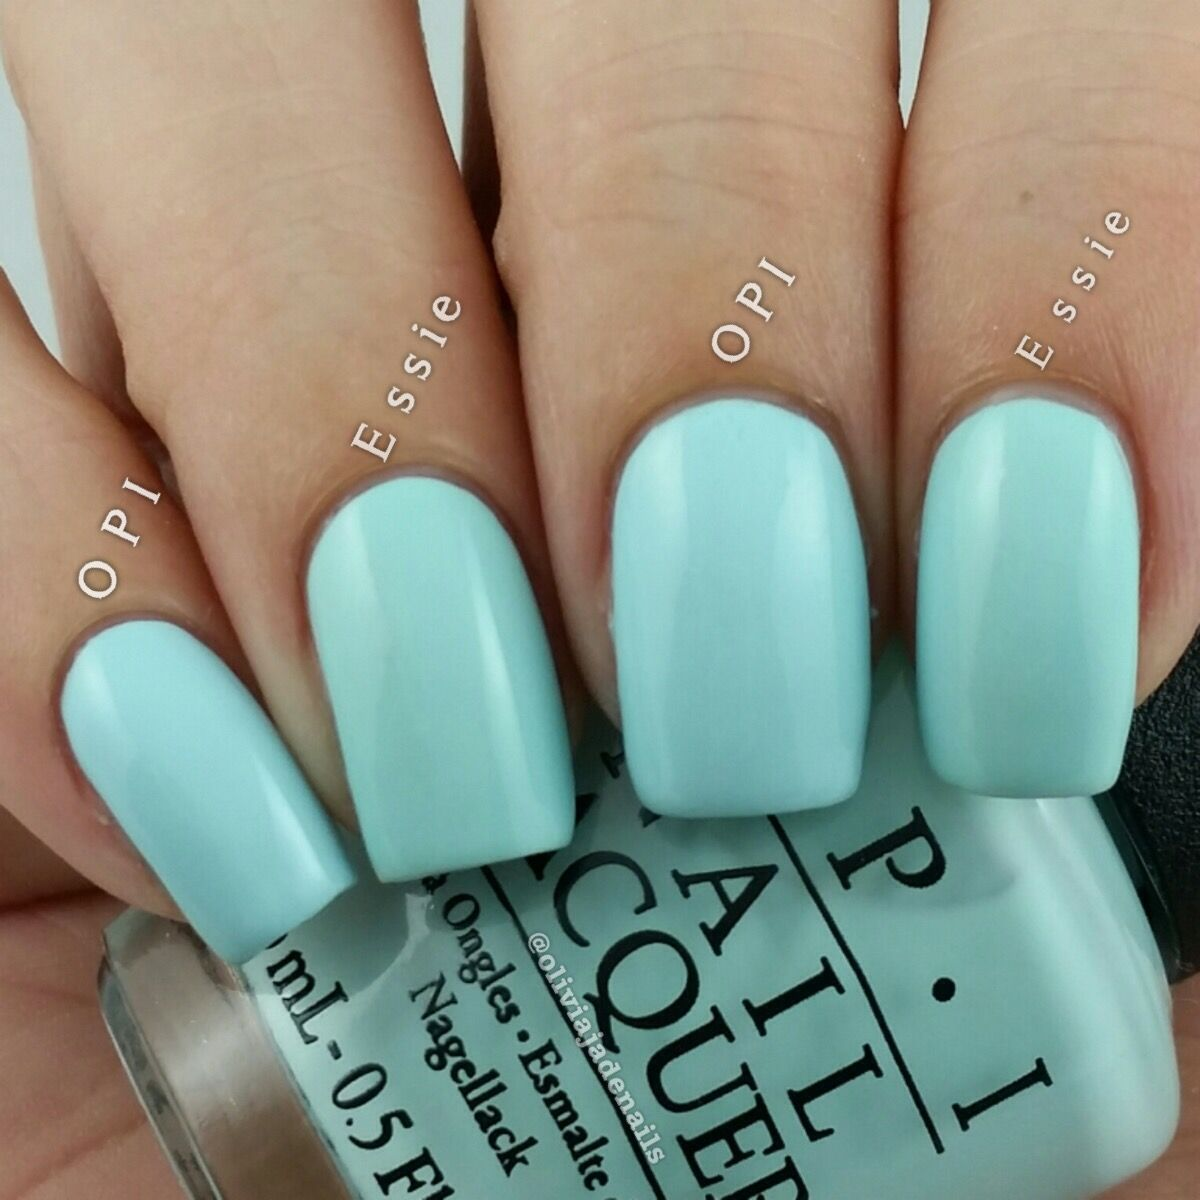 OPI Gelato On My Mind vs Essie Mint Candy Apple swatched by Olivia ...